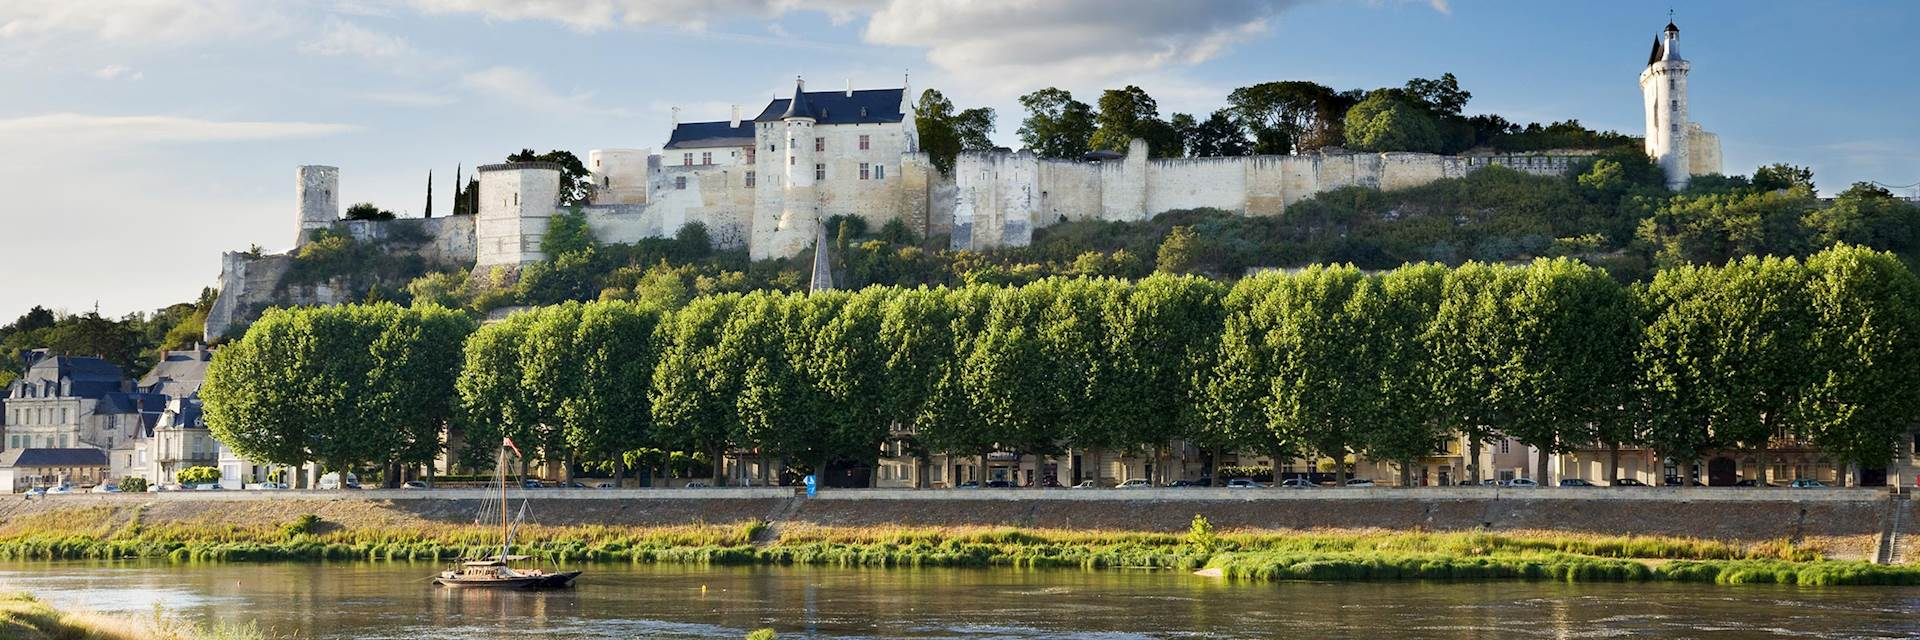 Chinon, Loire Valley